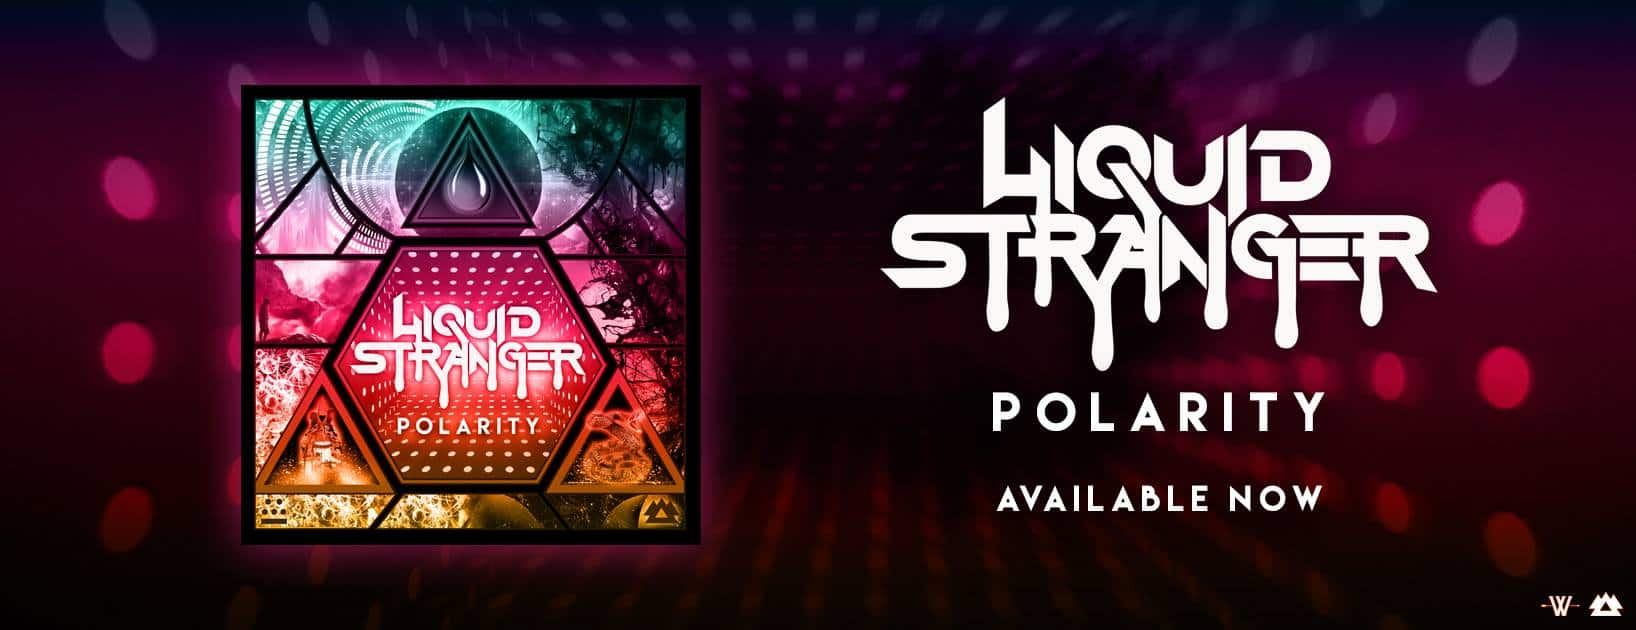 Photo of Liquid Stranger releases 'Polarity' EP on his Wakaan Label